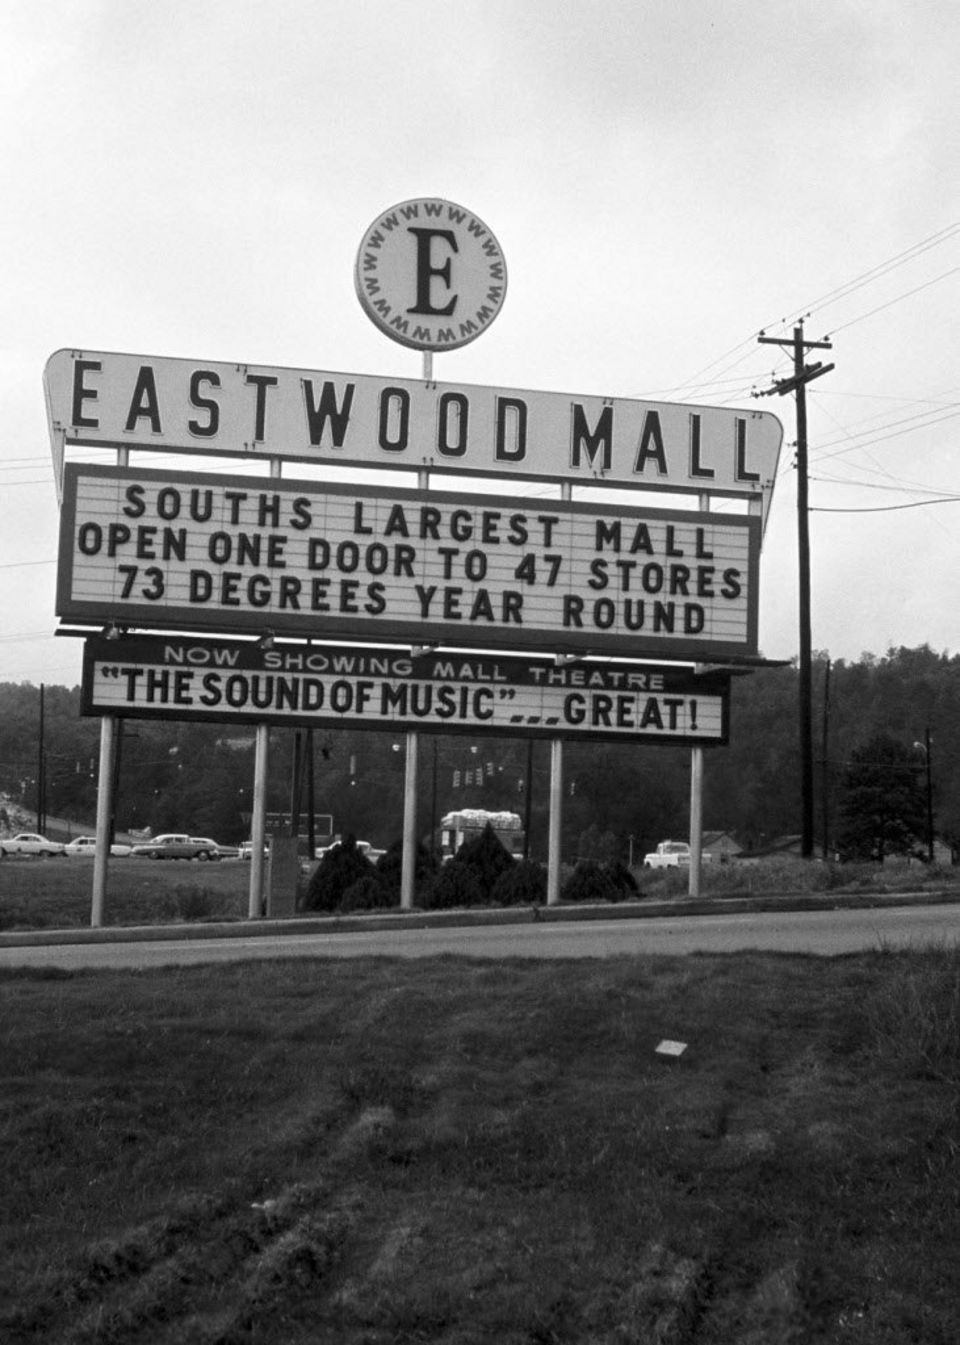 Eastwood Mall Opened 55 Years Ago Today Vintage Photos Of